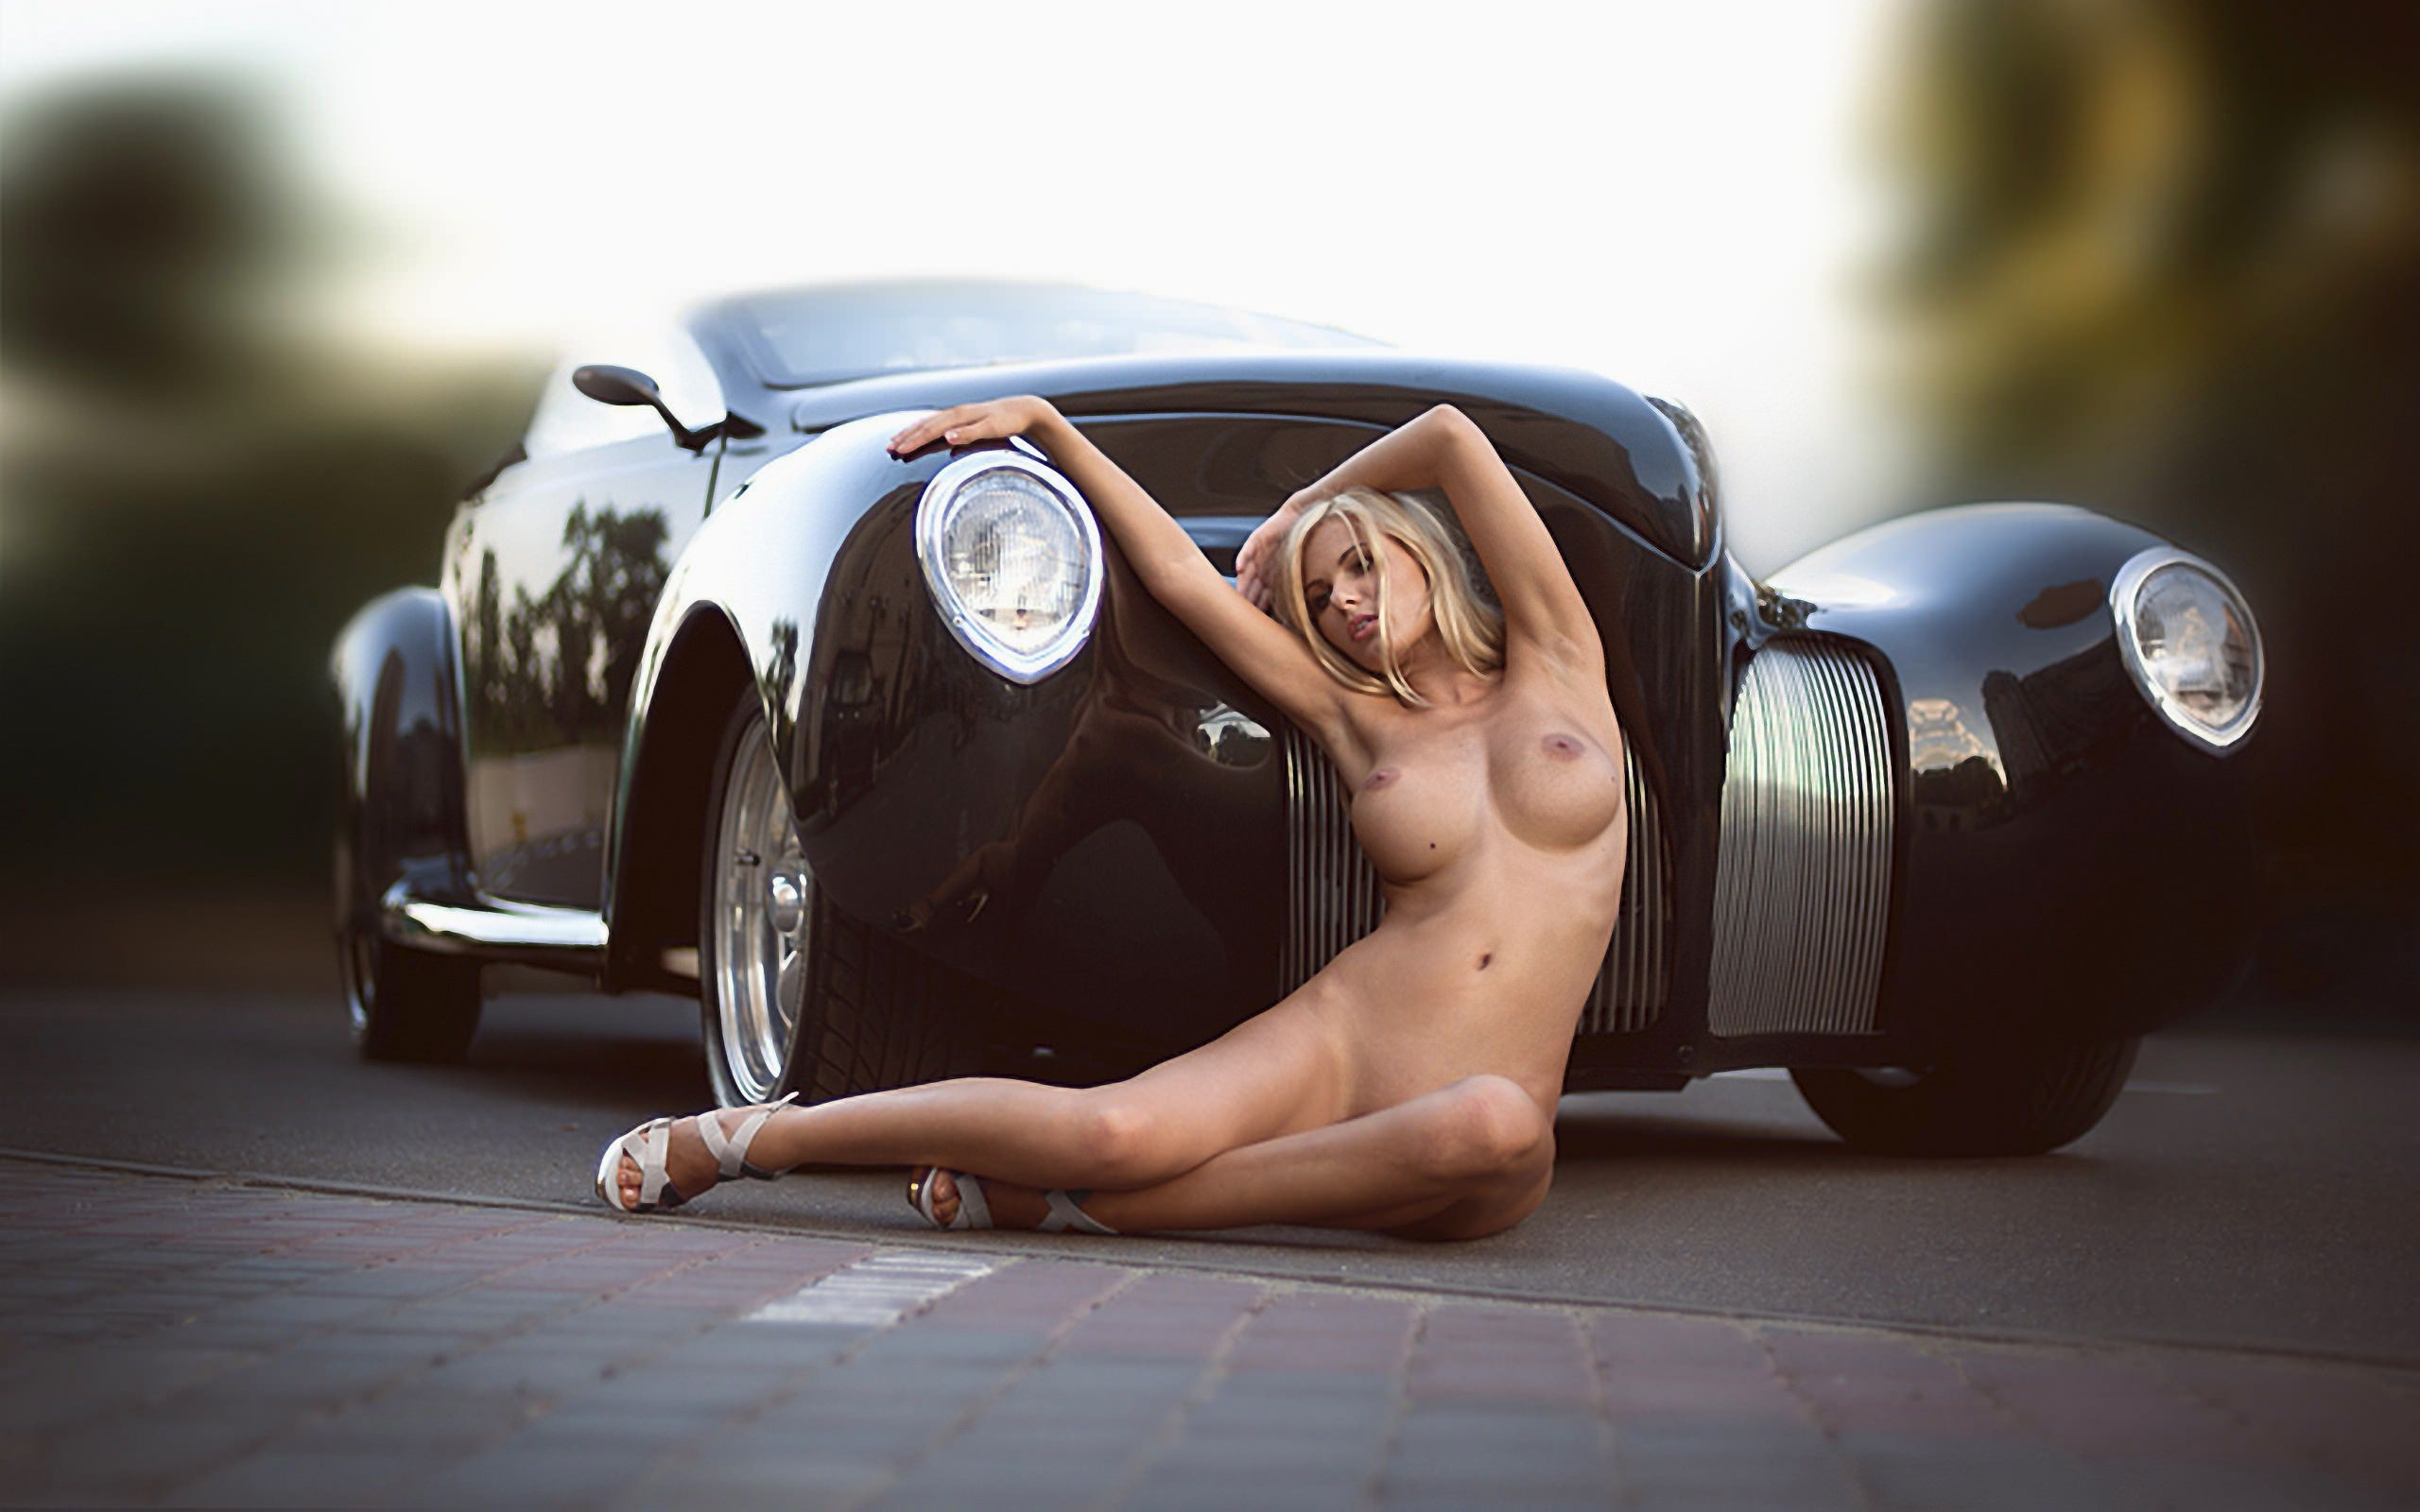 Hot nude girls and cars